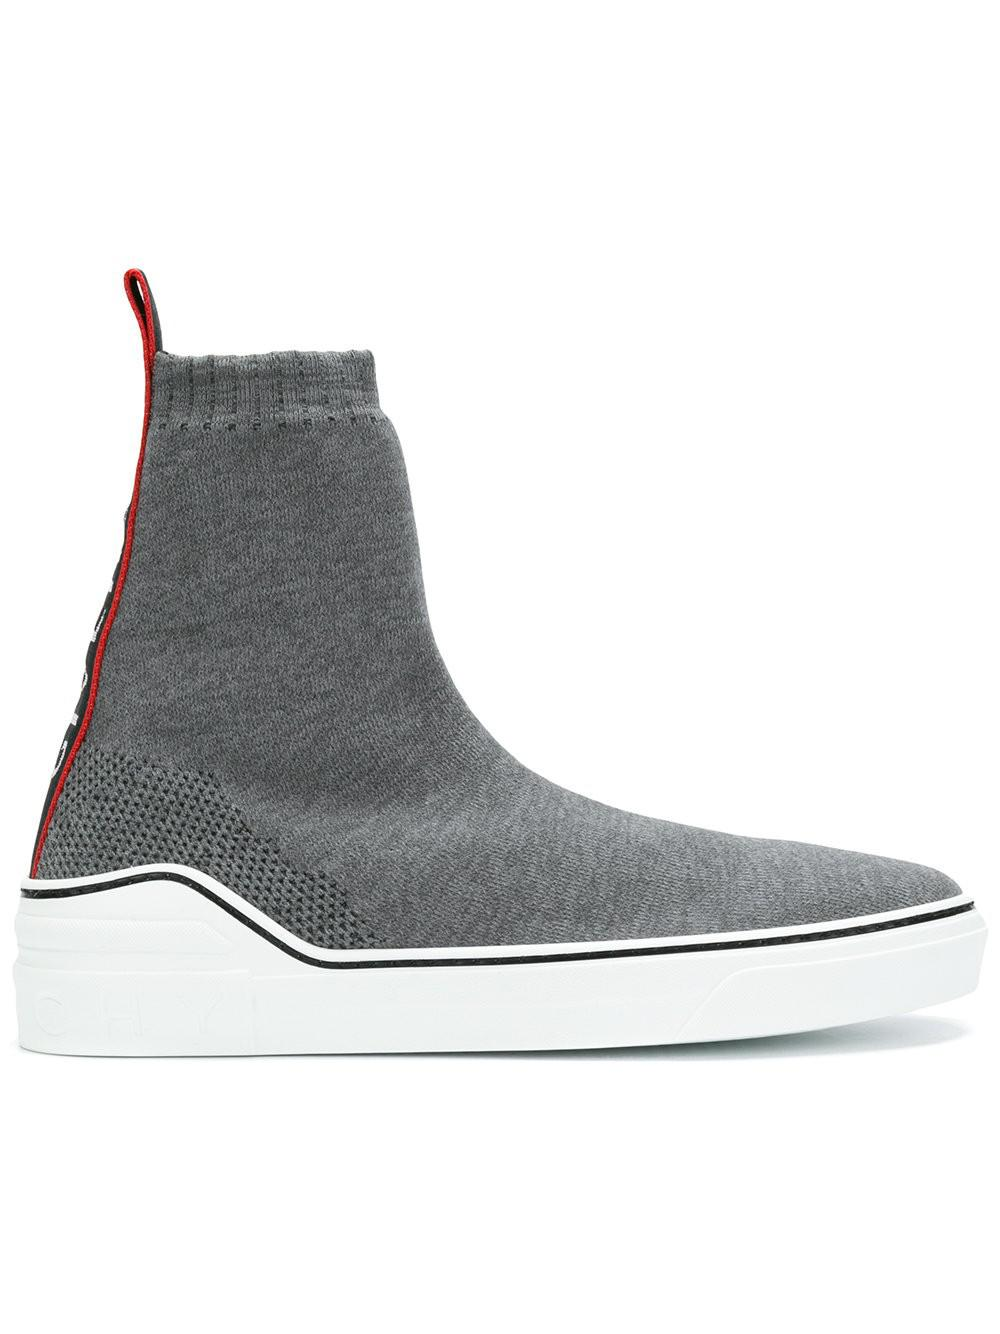 sock style sneakers - Black Givenchy PU5OvVPu1